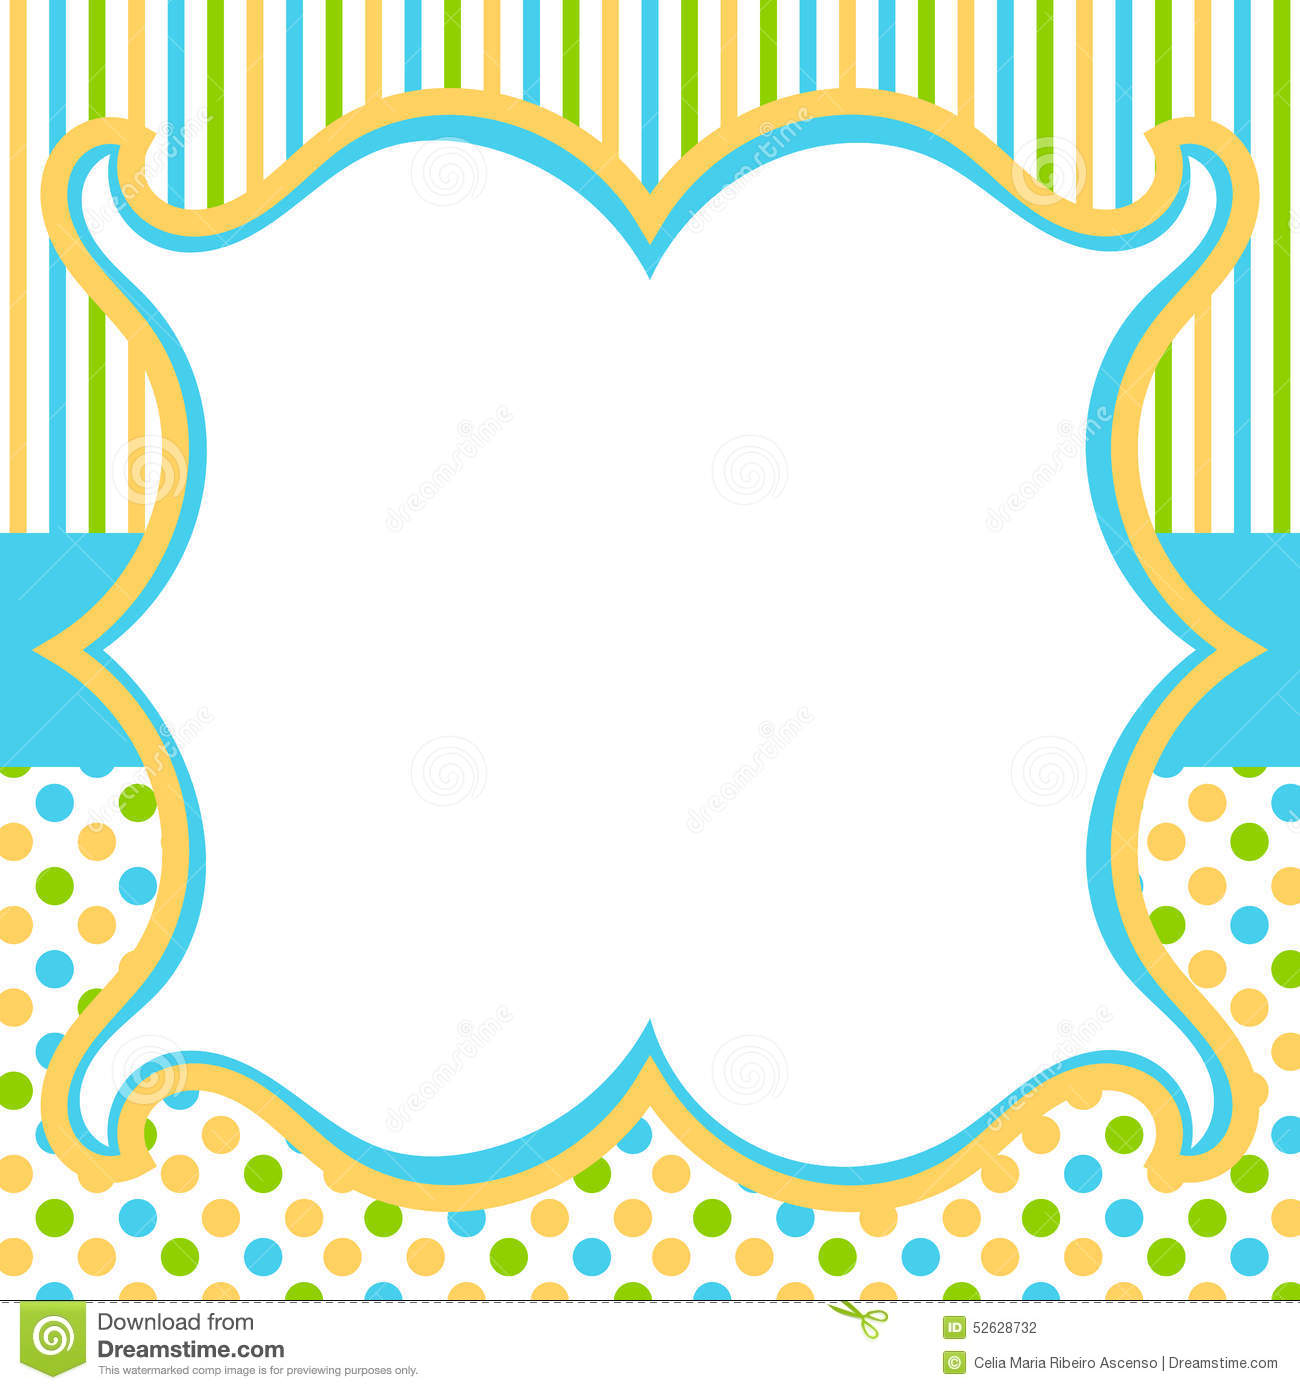 Vintage frame with polka dots and stripes background